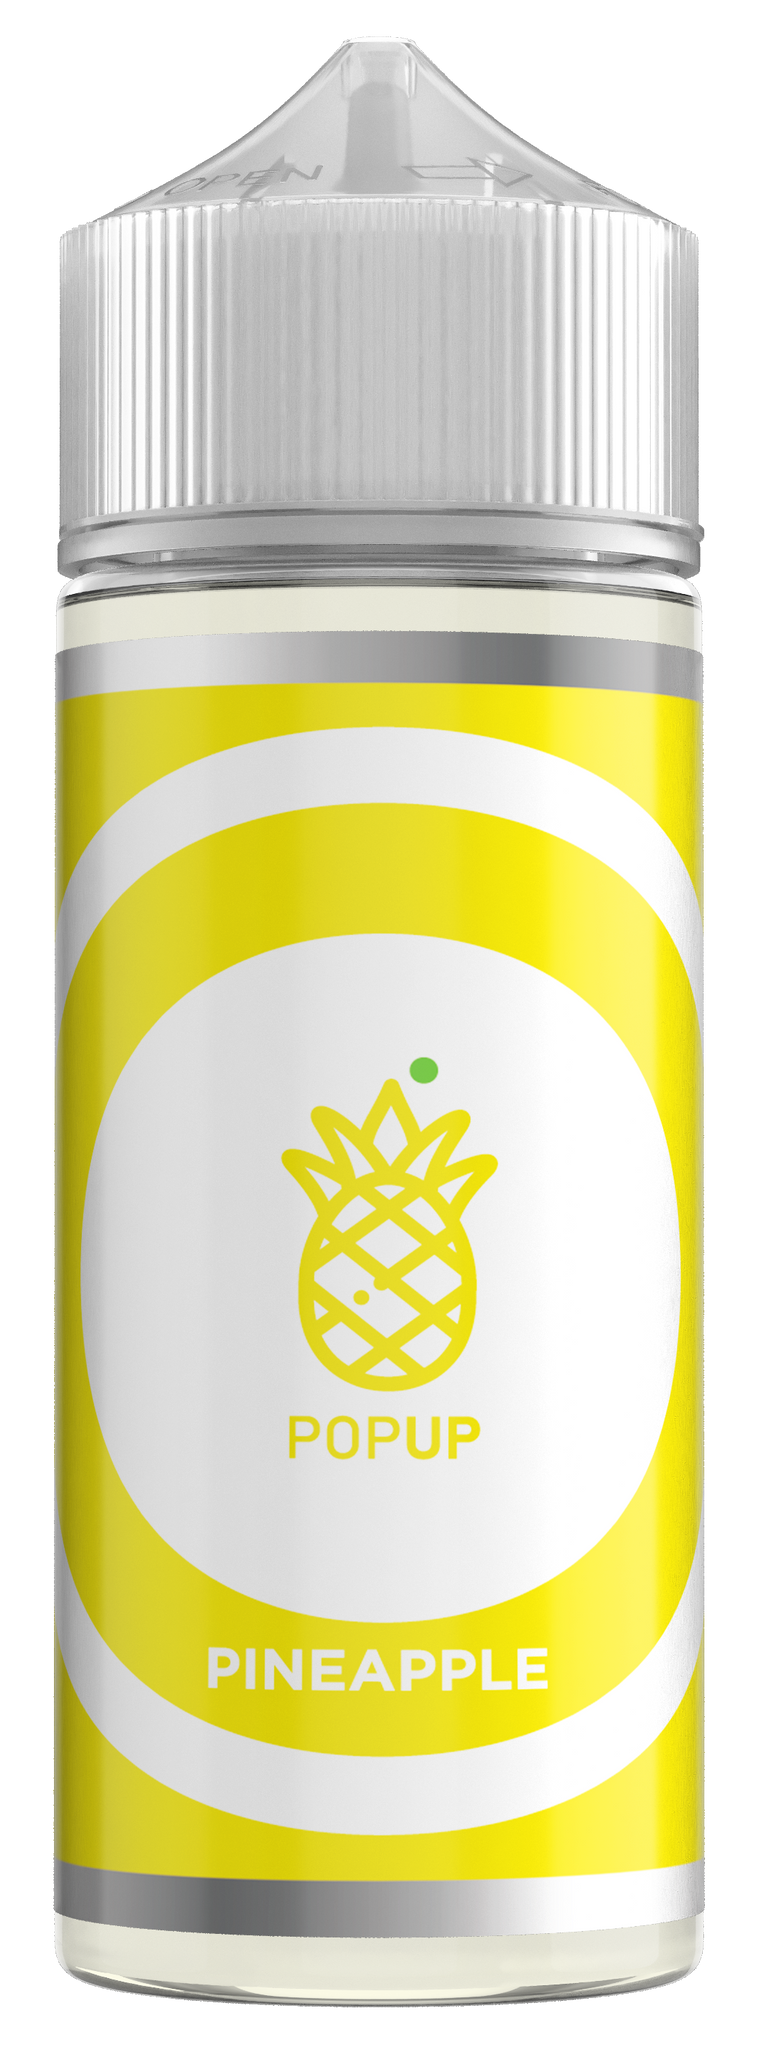 Pop Up - Pineapple